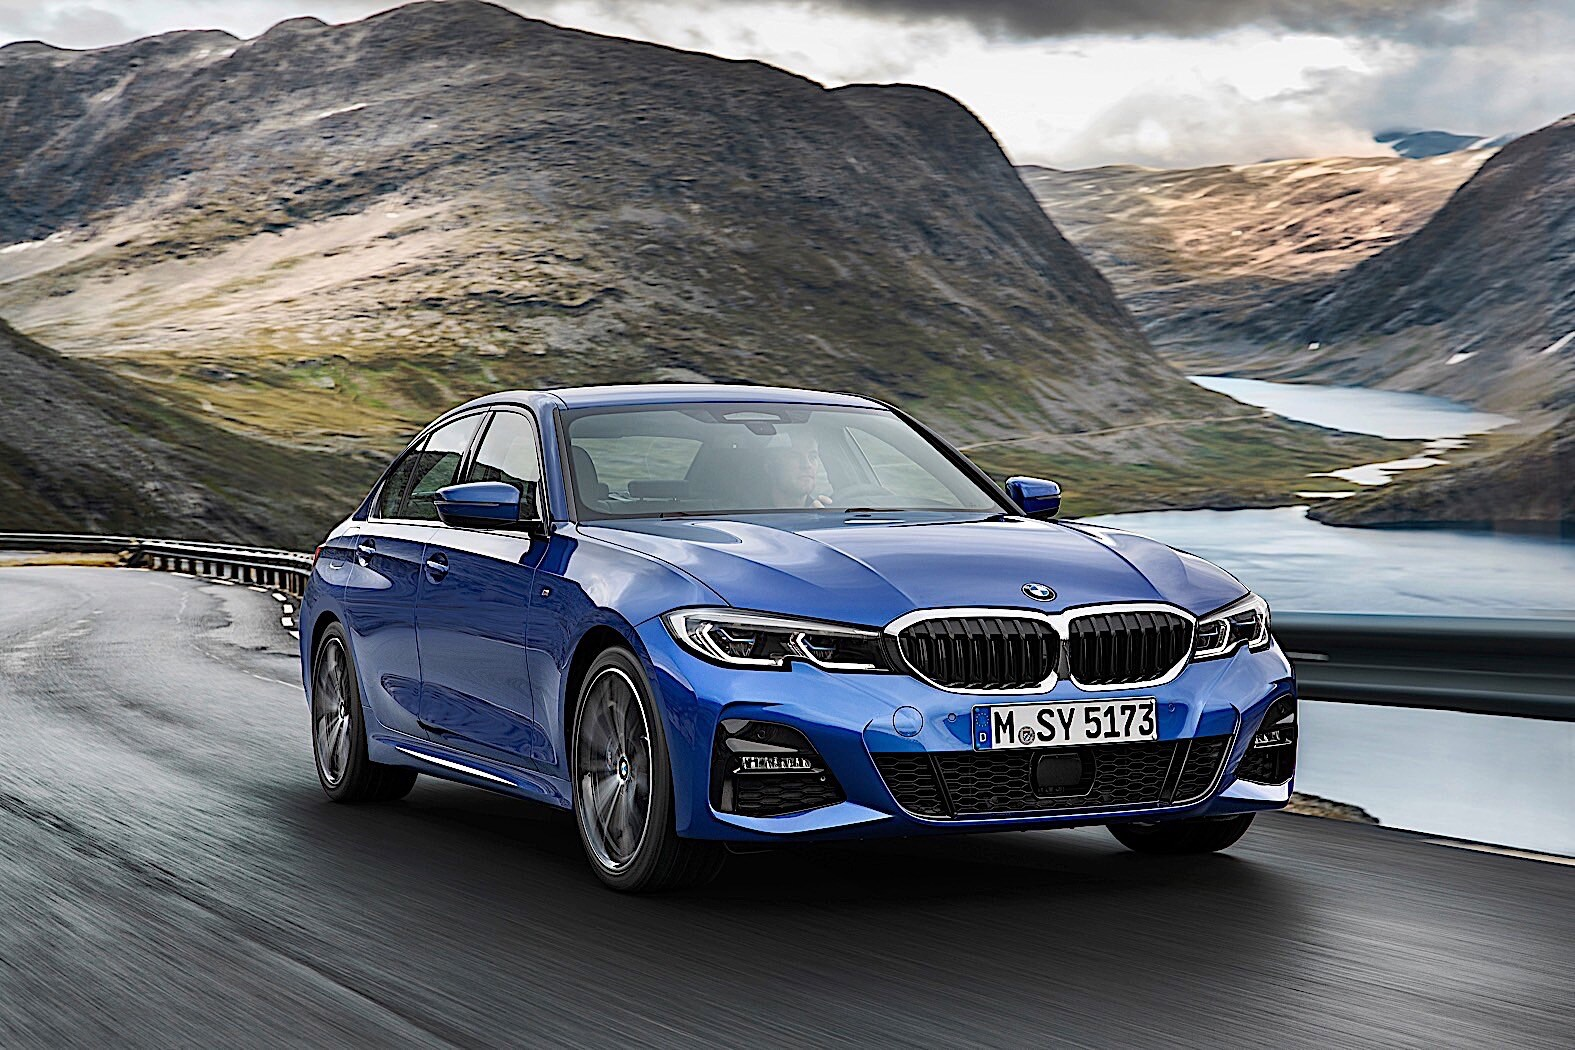 bmw of dayton - what's new for the 2020 bmw 3 series?